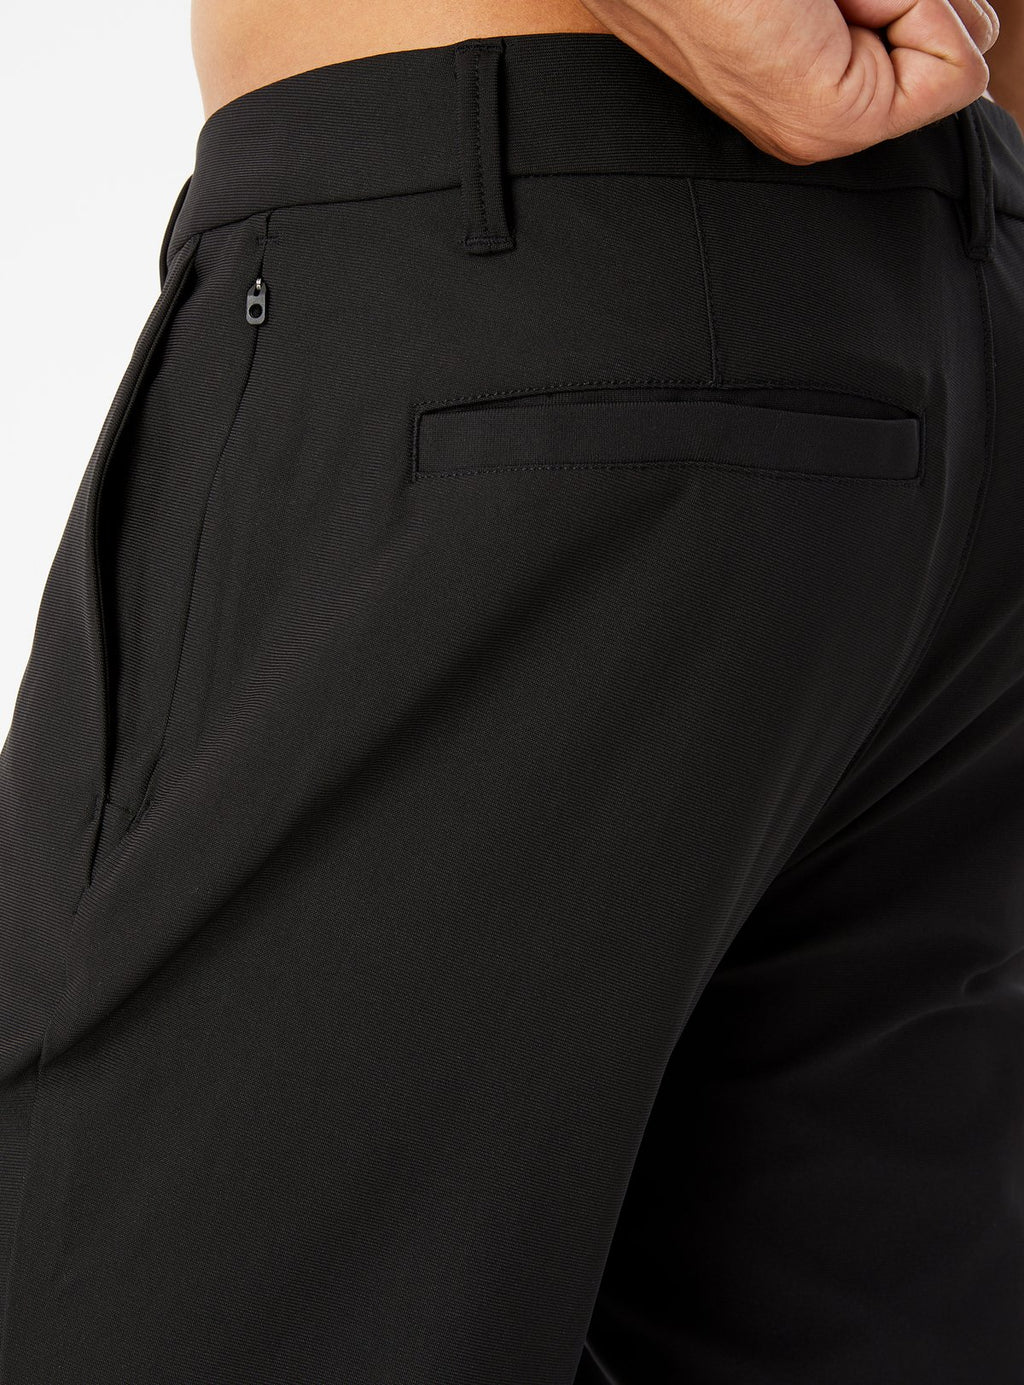 7 Diamonds- Infinity Chino- Black